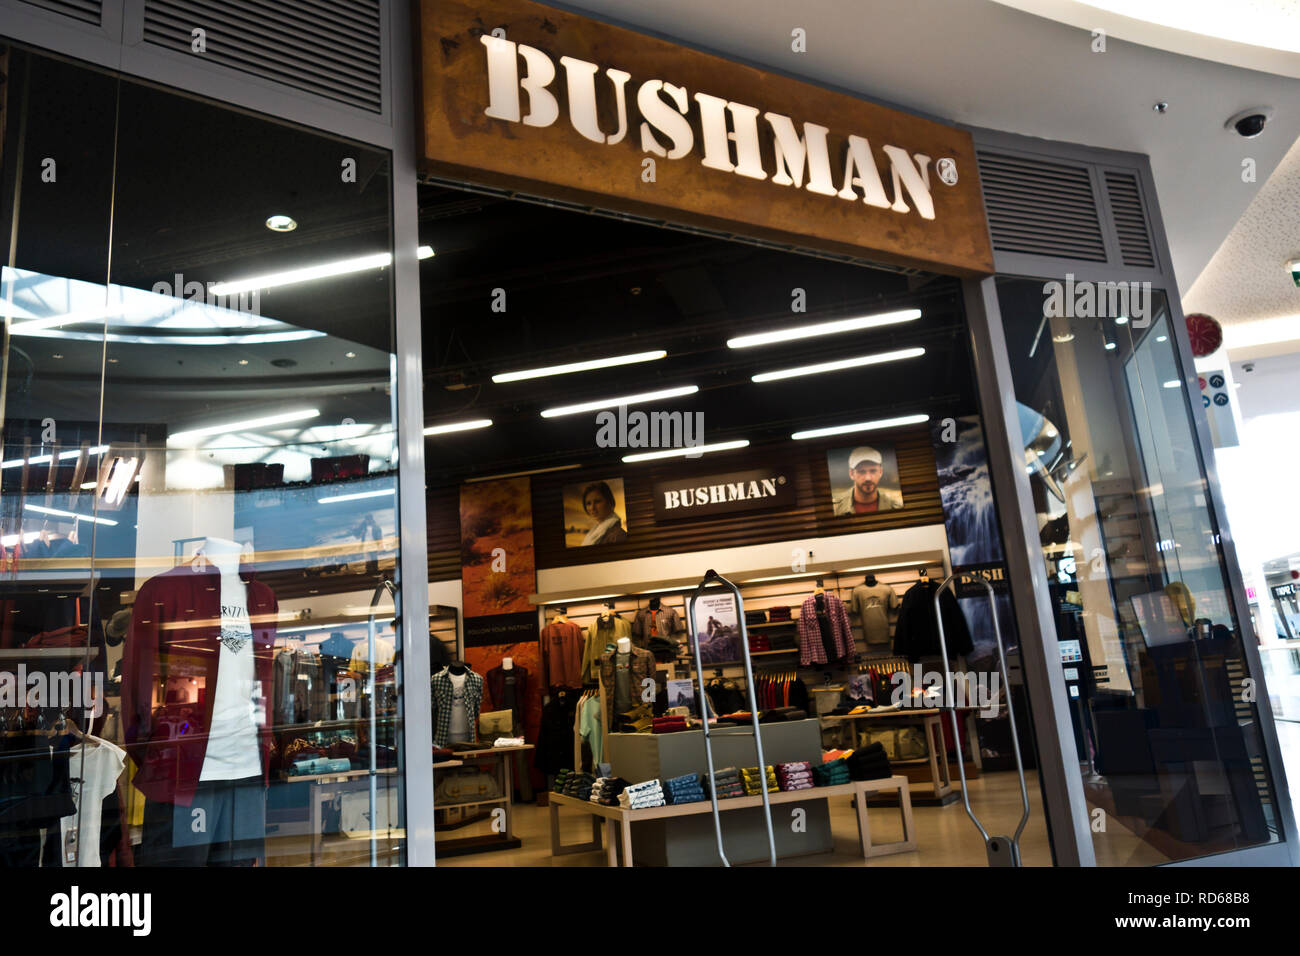 entrance of a Bushman clothing store - Stock Image